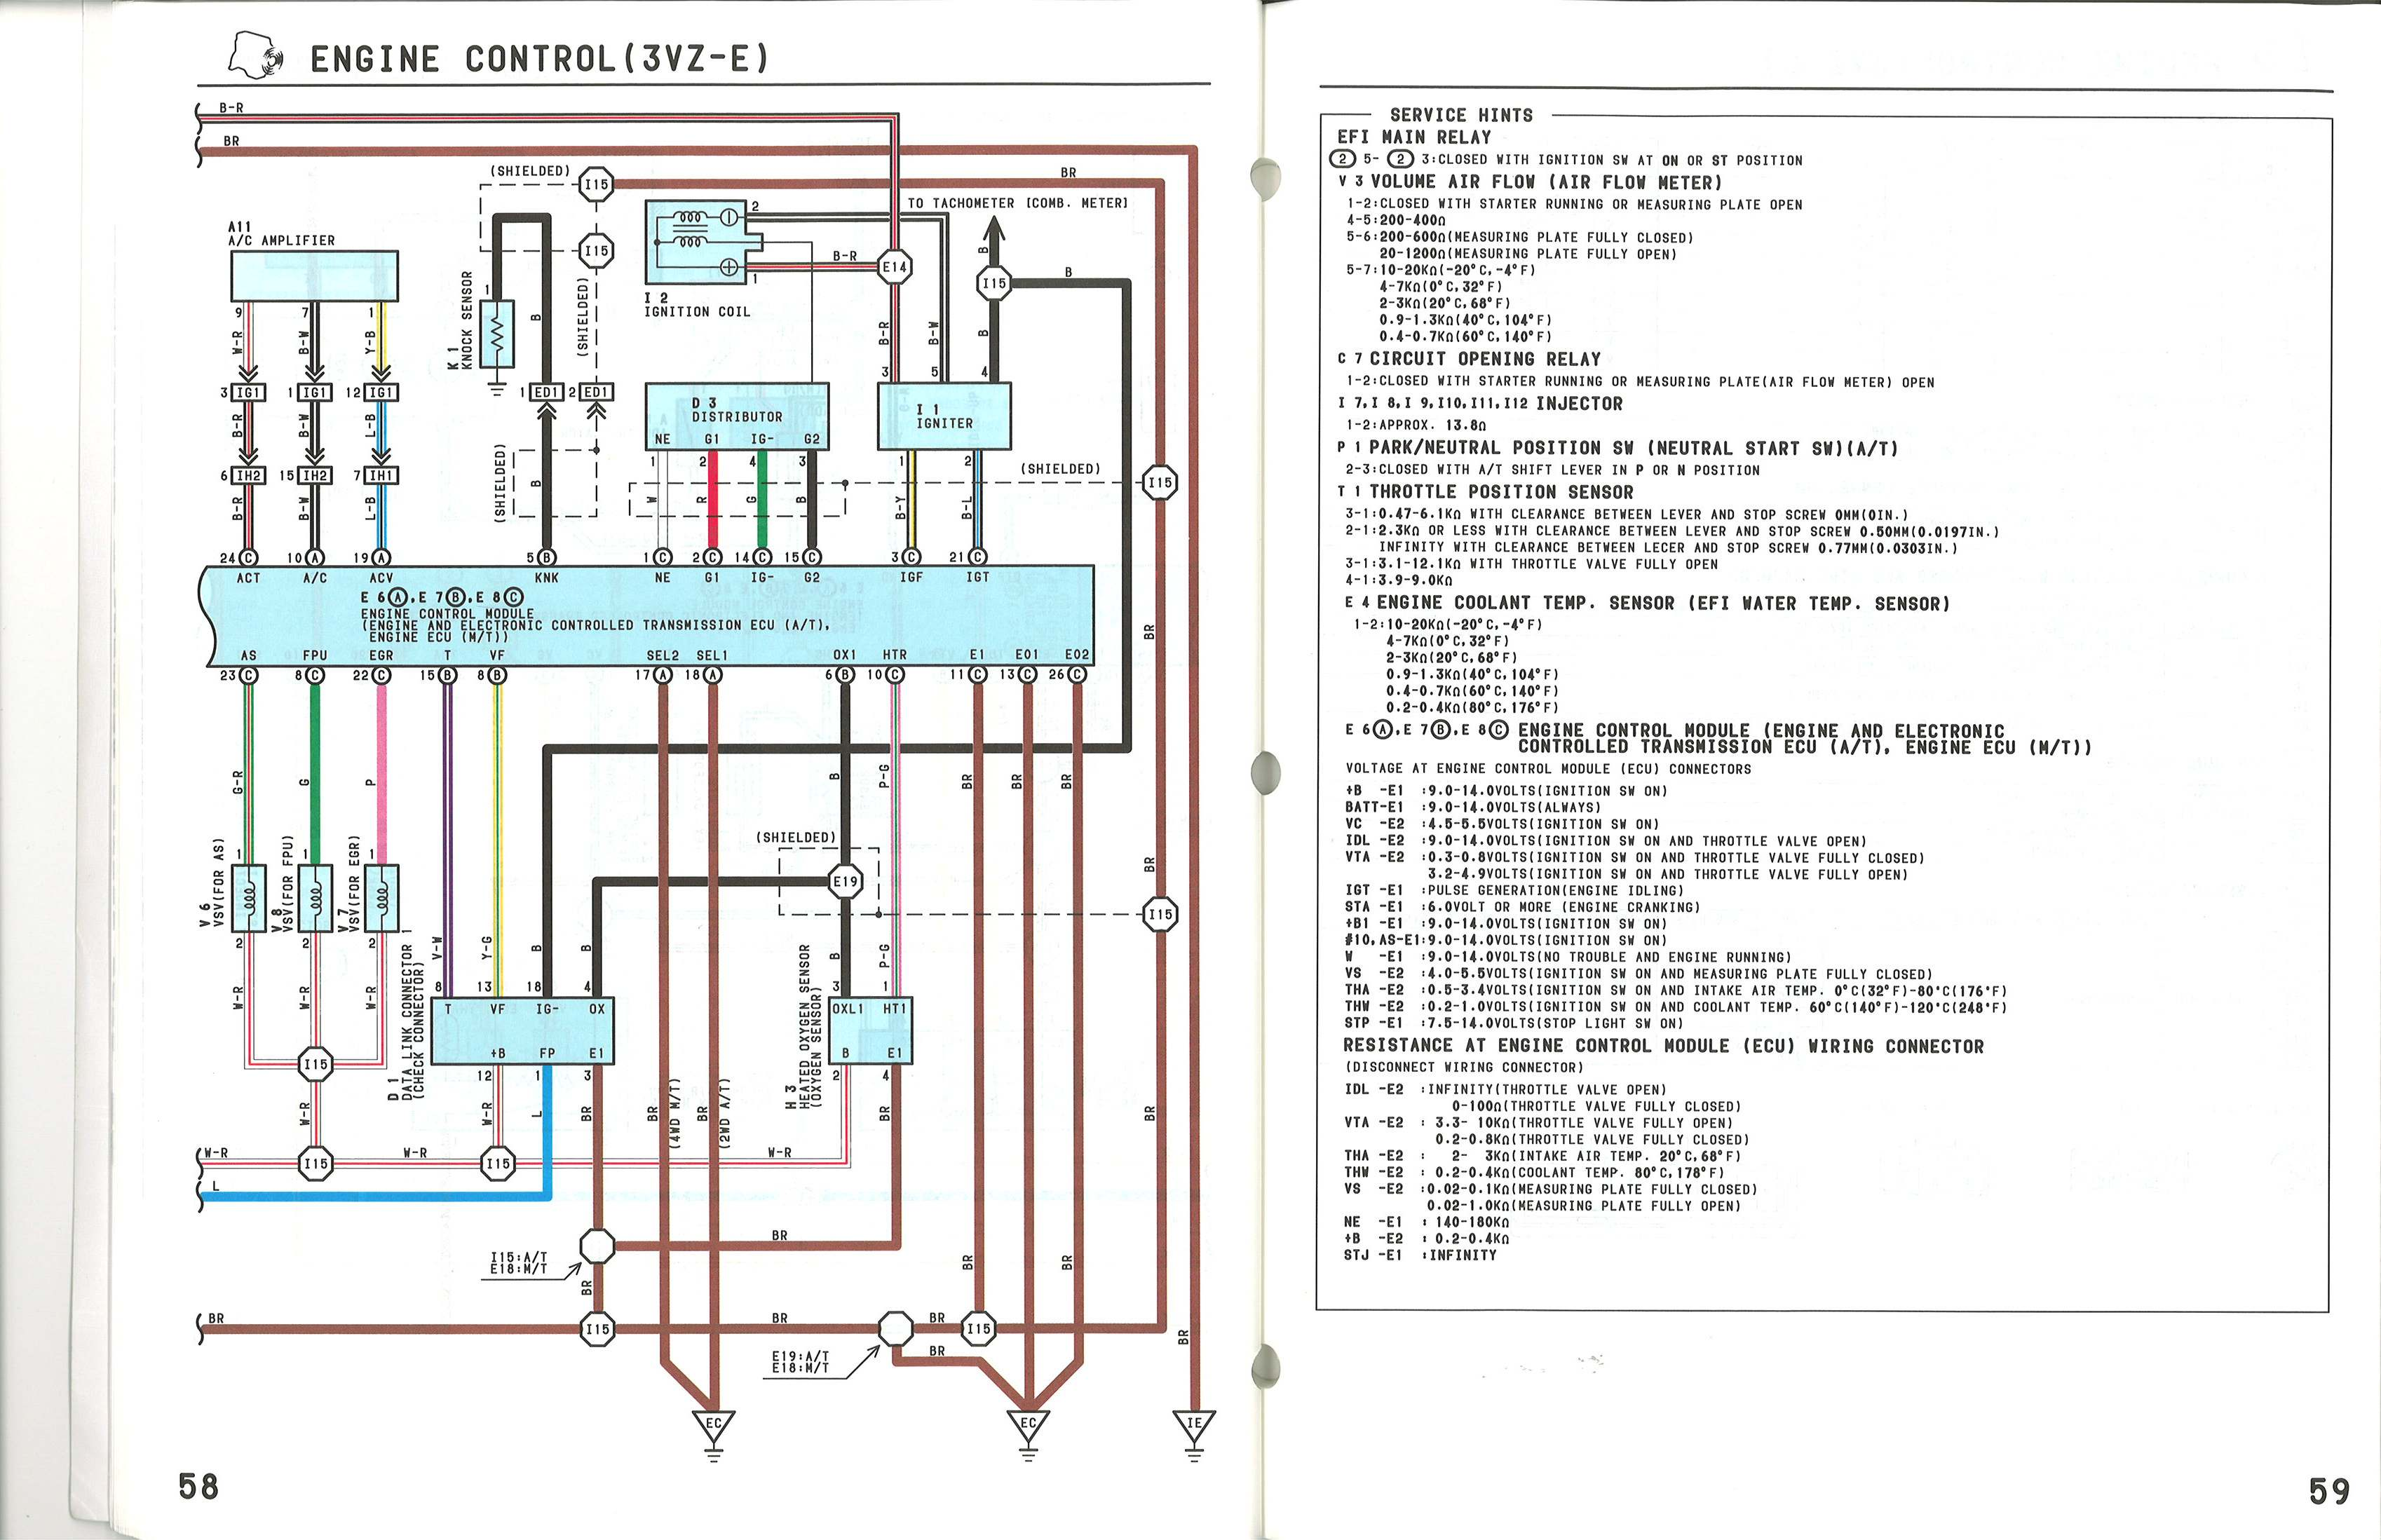 Engine_Control_3vze_3 2005 4runner ecu wiring diagram 1995 toyota 4runner wiring diagram 2002 4runner wiring diagram at bayanpartner.co